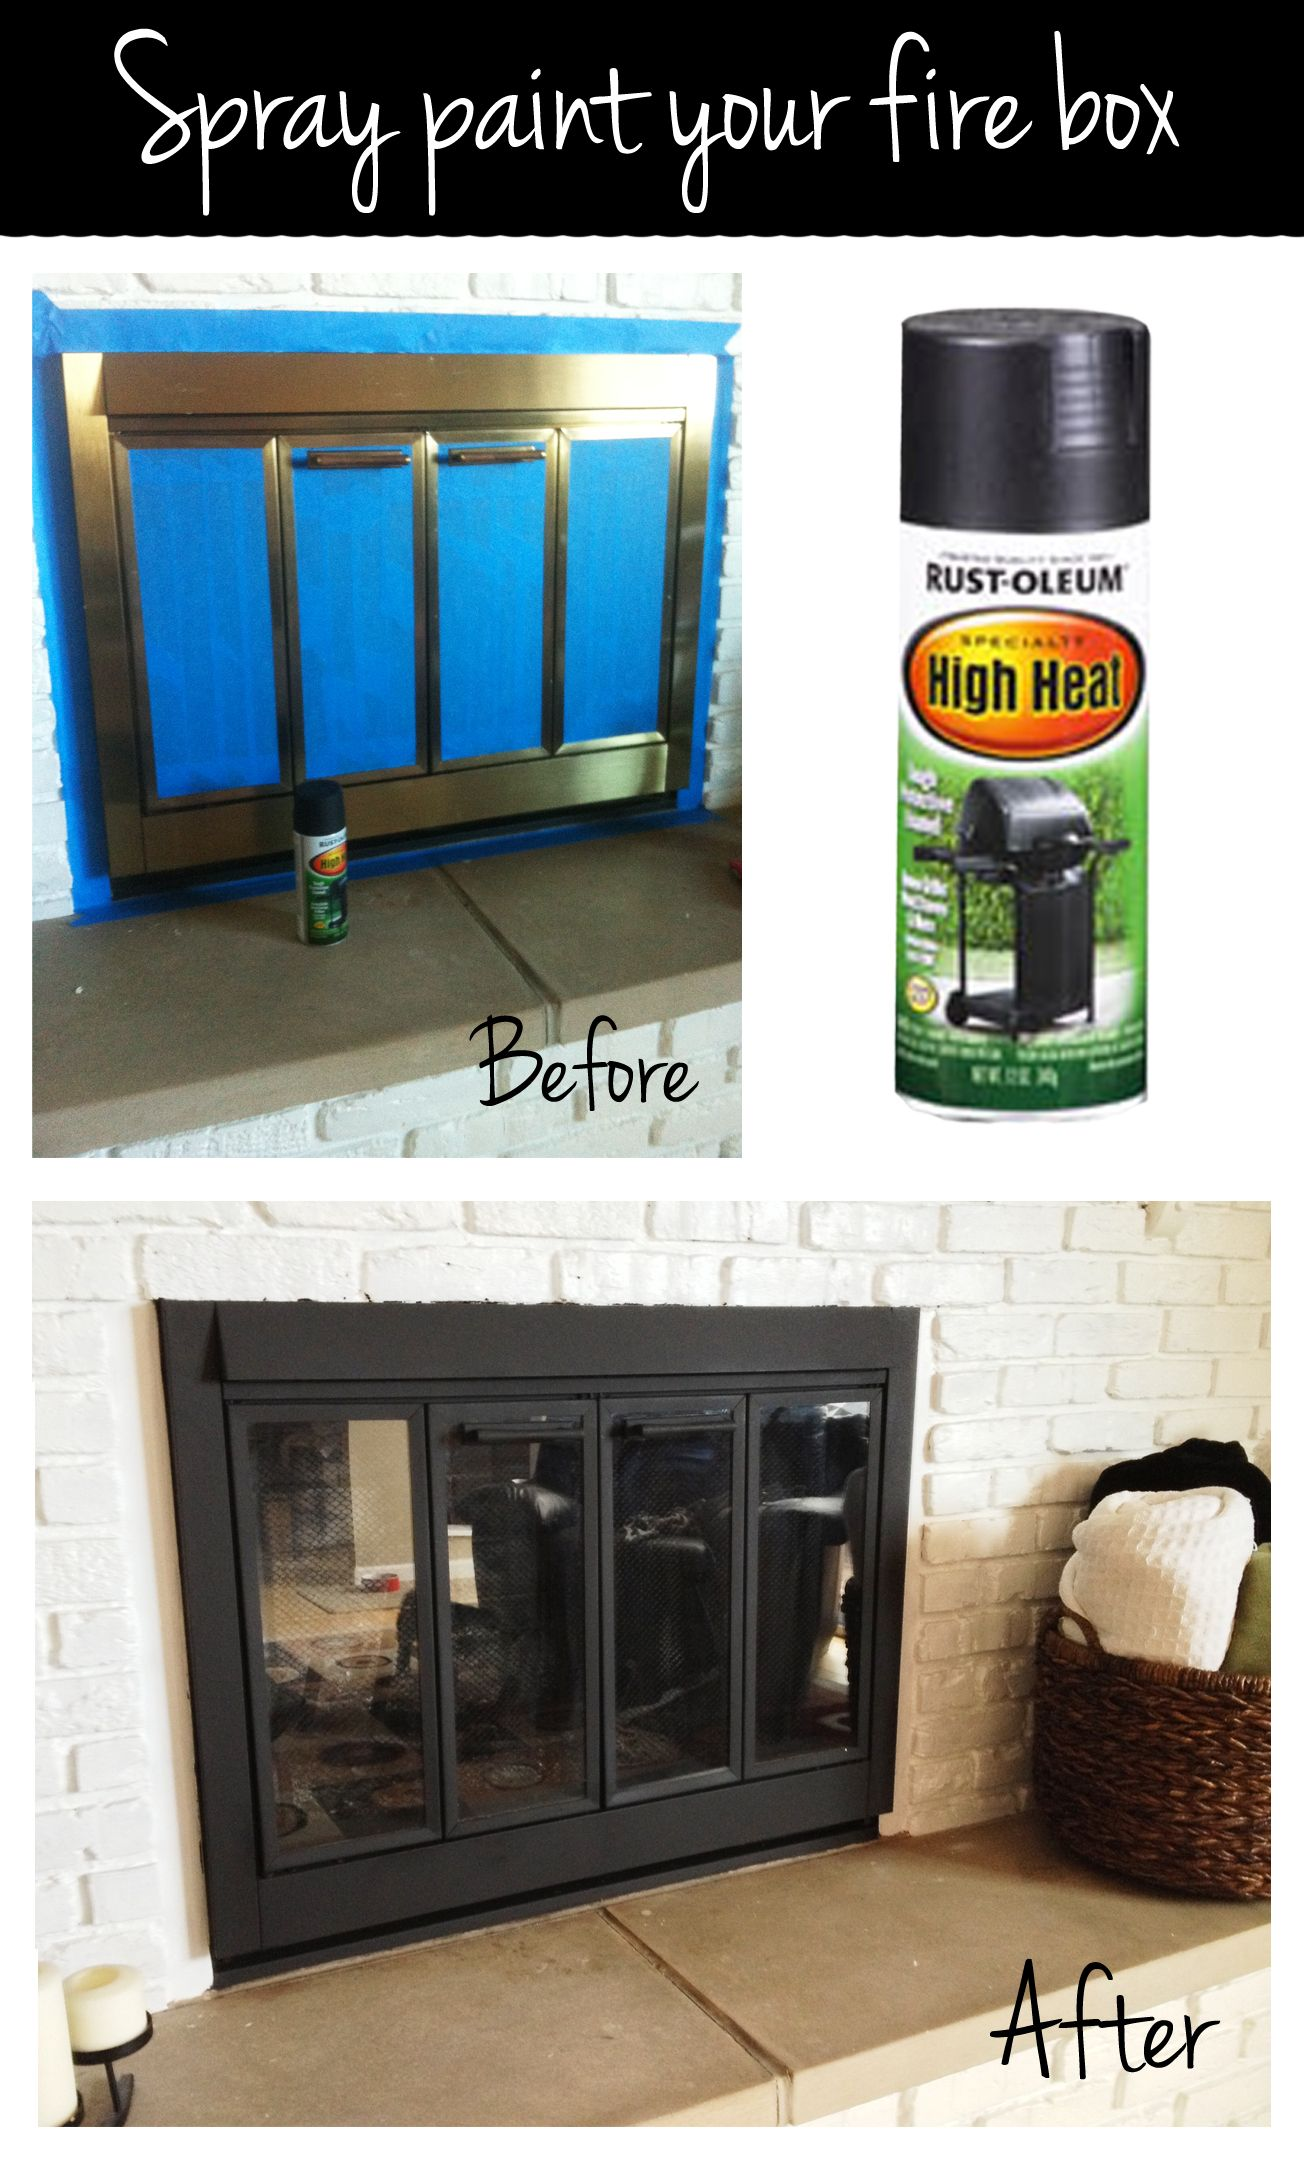 Spray Paint Your Fire Box With High Heat Spray Paint For